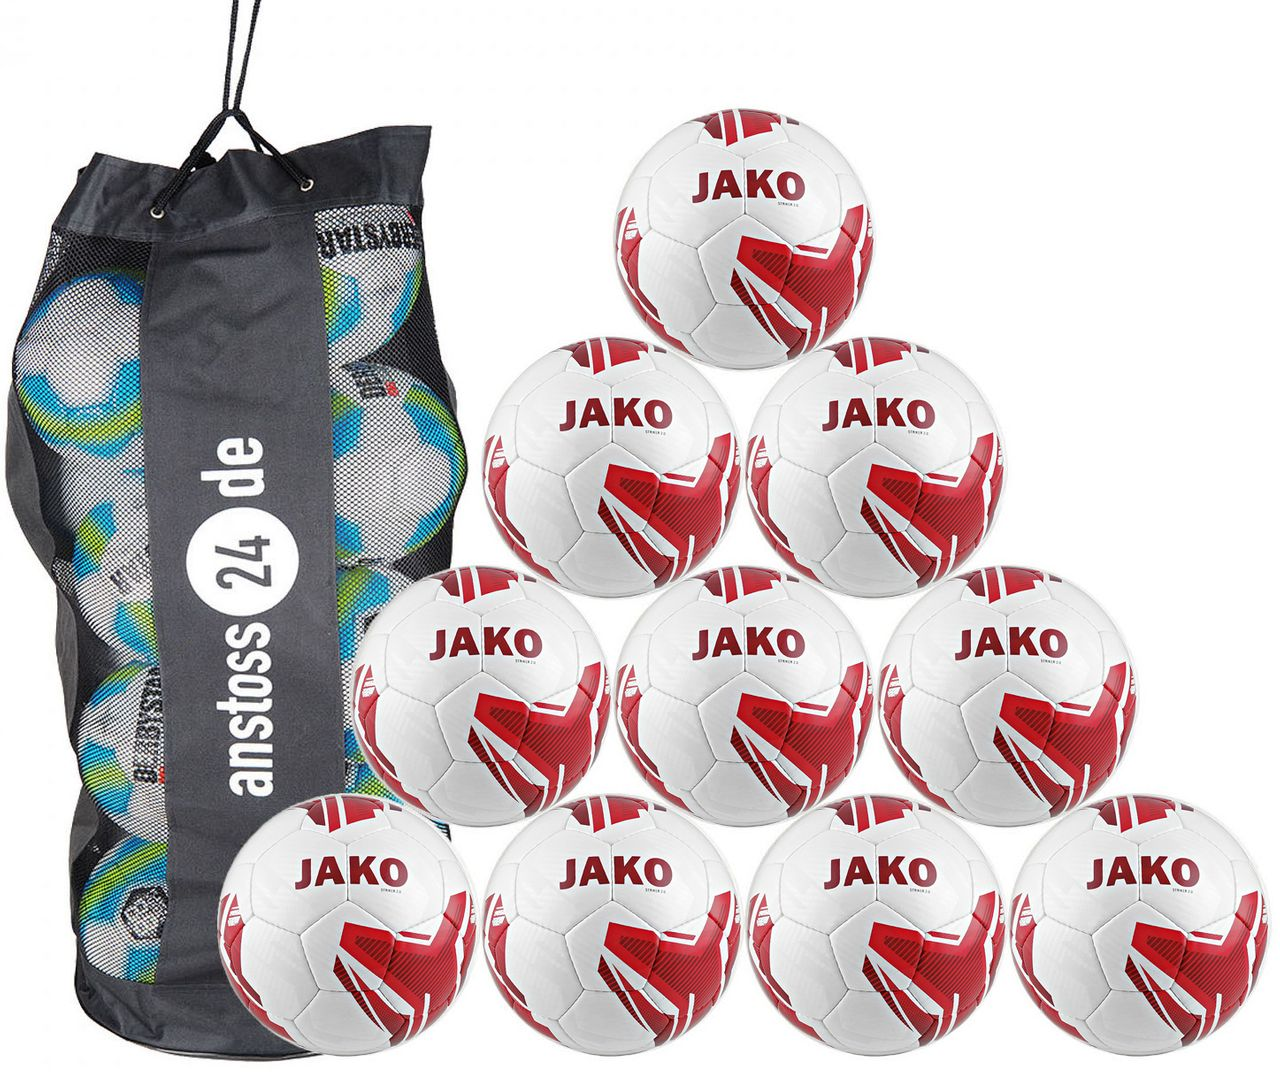 10 x JAKO Trainingsball Striker 2.0 inkl. Ballsack